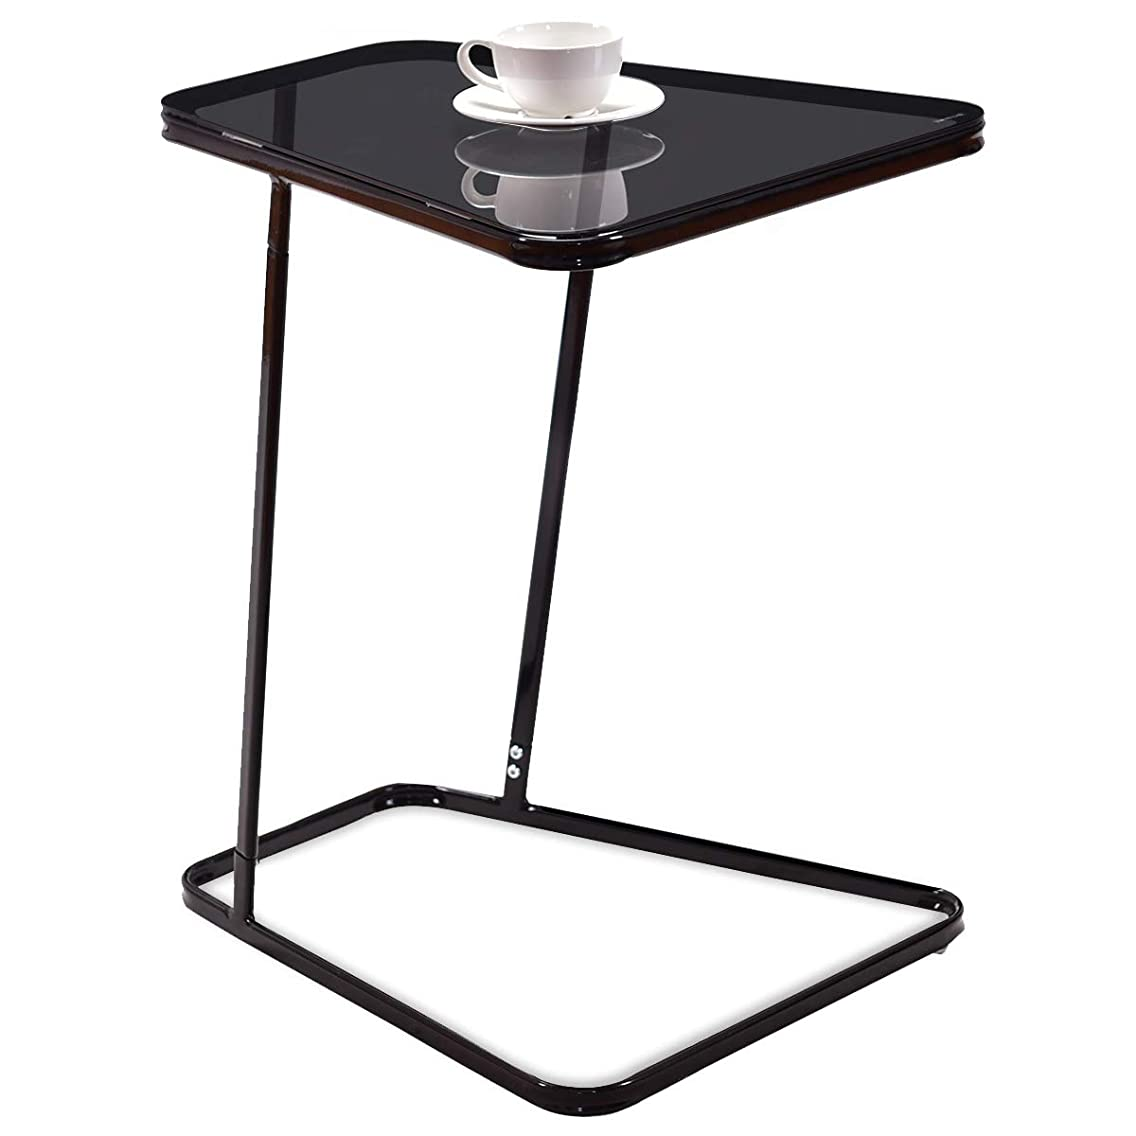 Tangkula Snack Table Home Glass Top Metal Frame Sofa Side End Table C Shaped Table (1, Black)